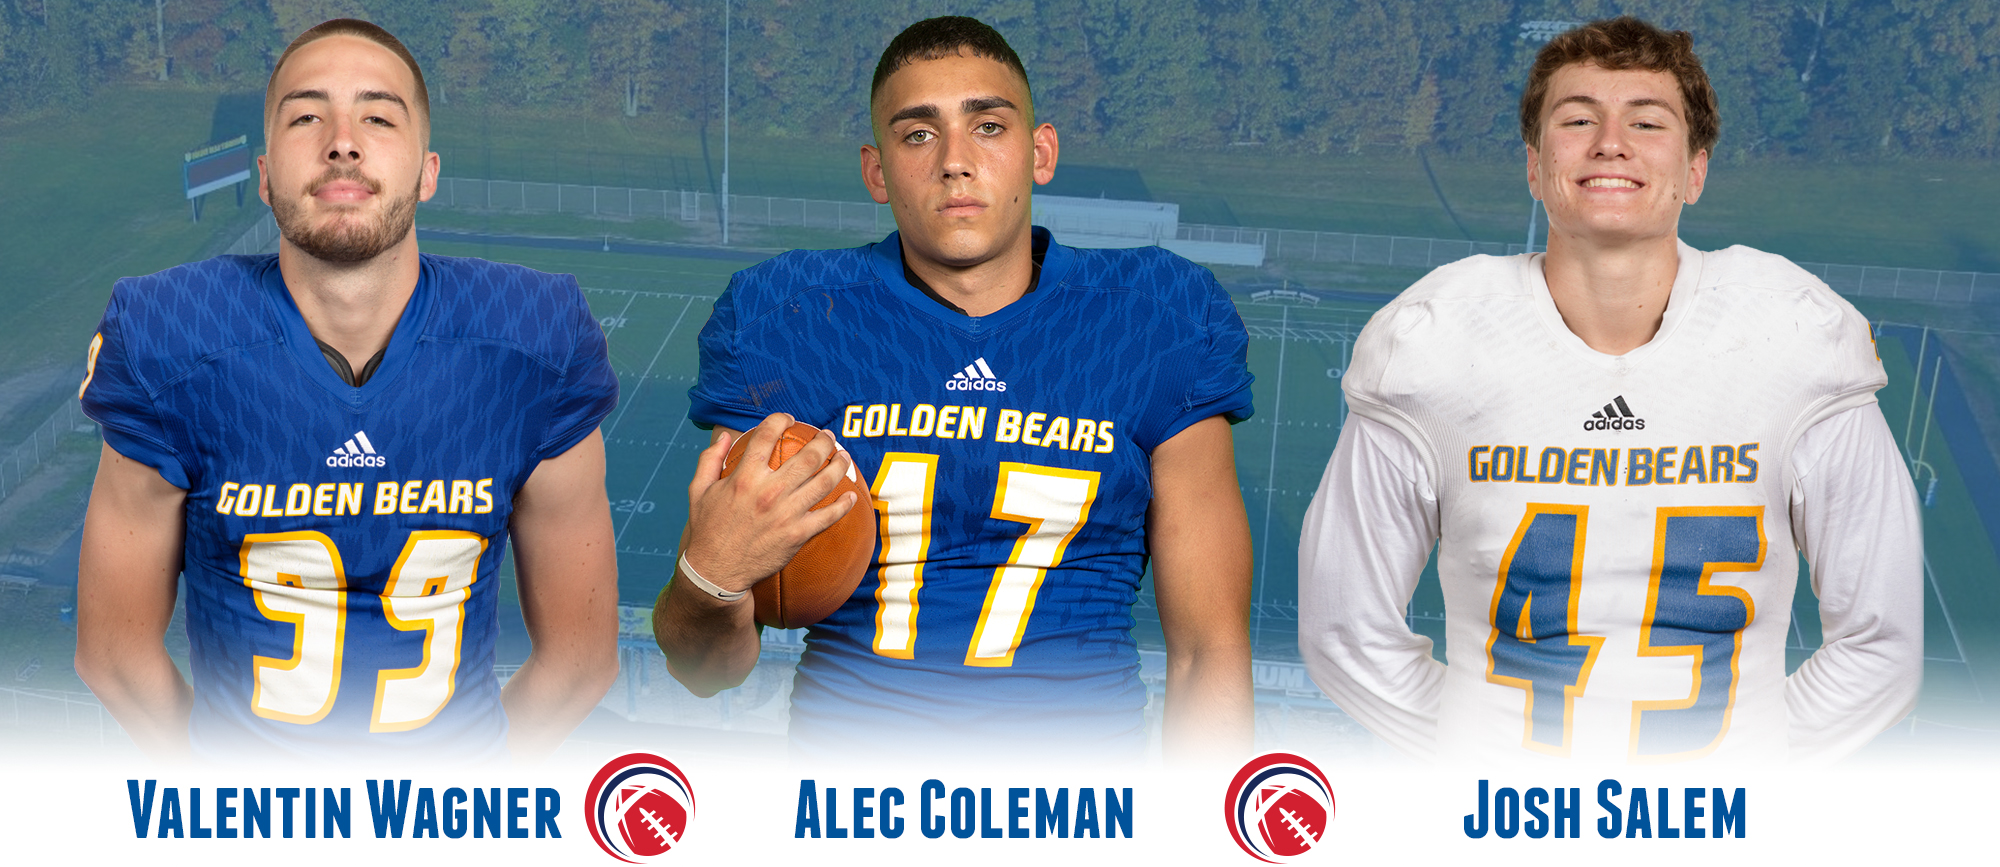 Coleman, Salem & Wagner Recognized by CCC Football Following Saturday's Win over Nichols